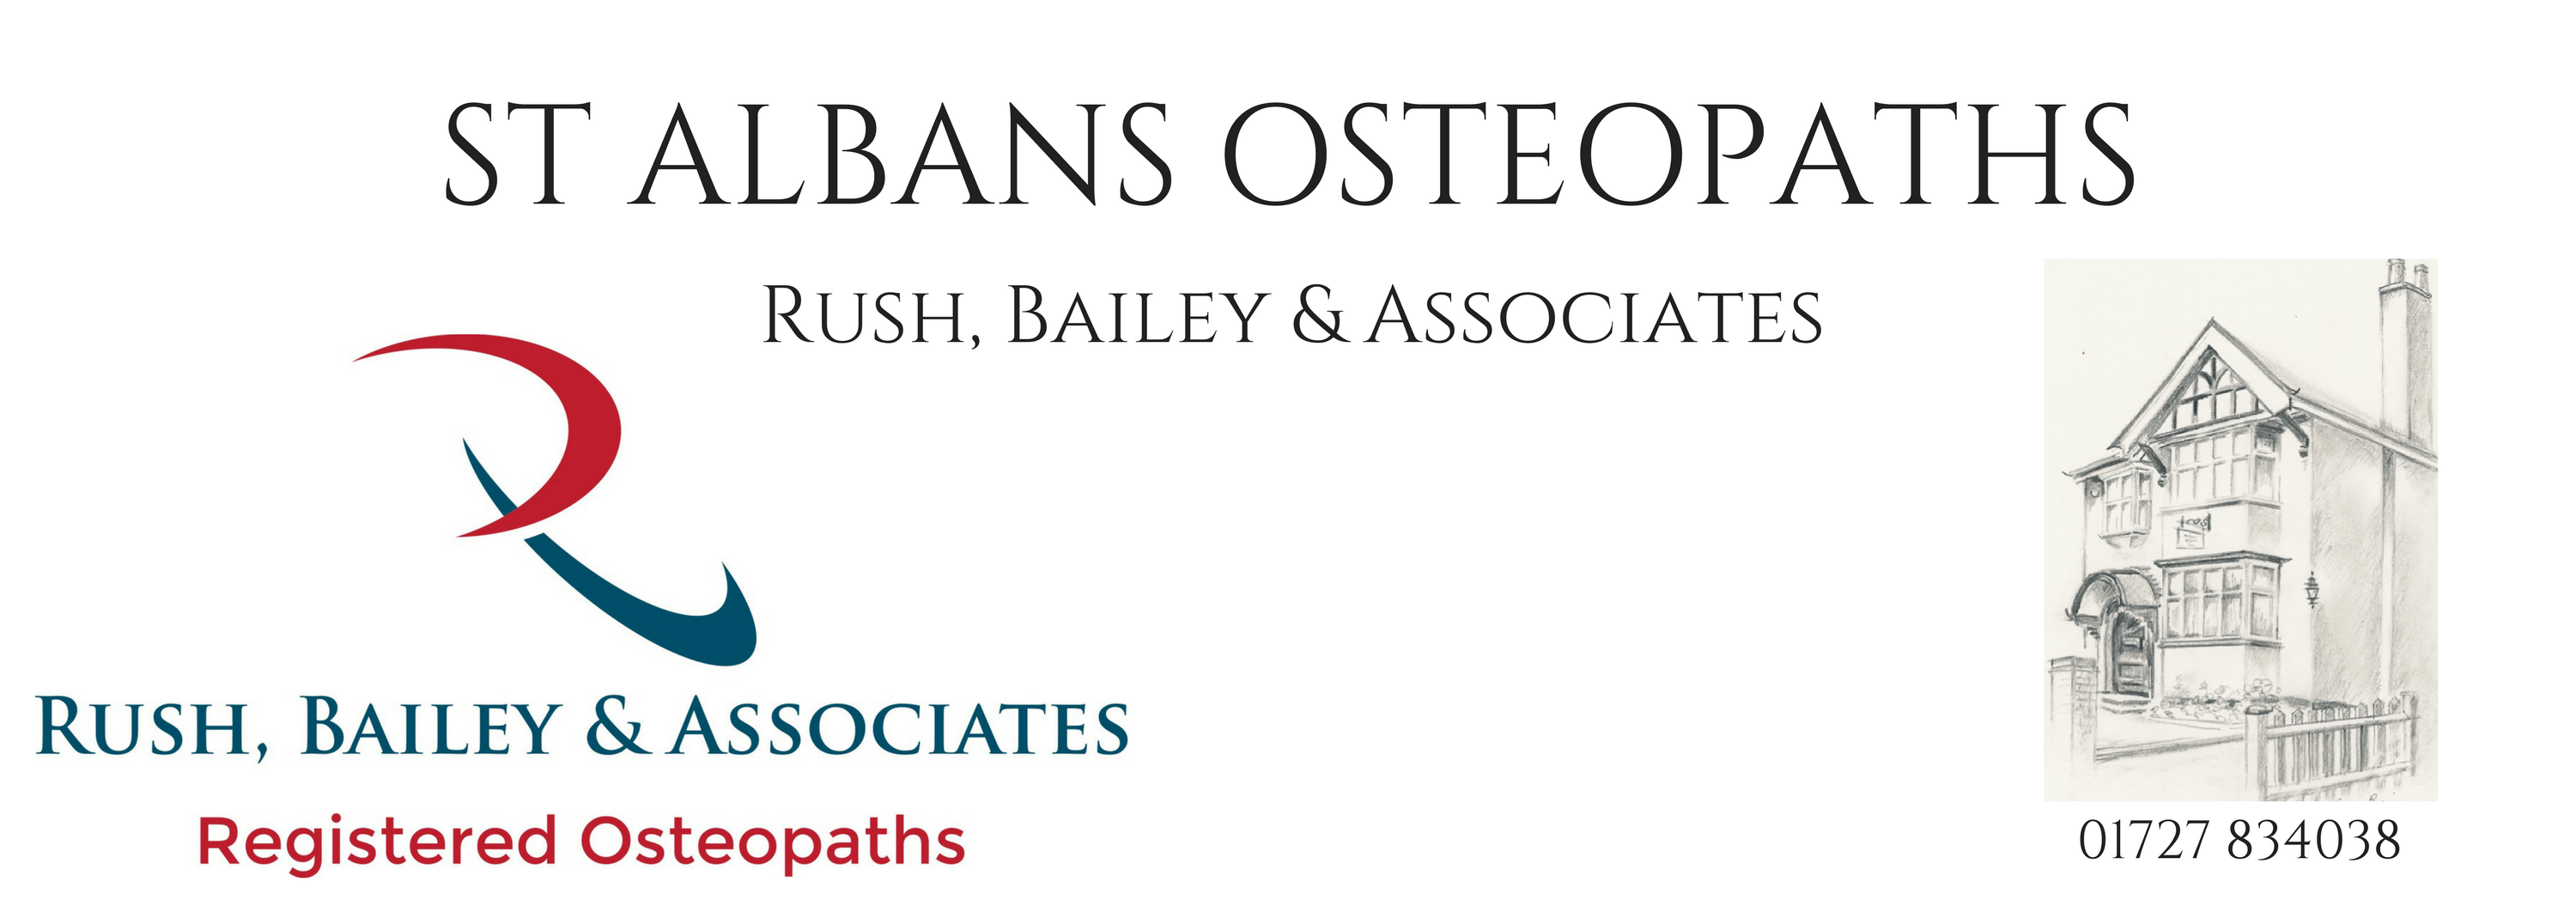 St Albans Osteopaths